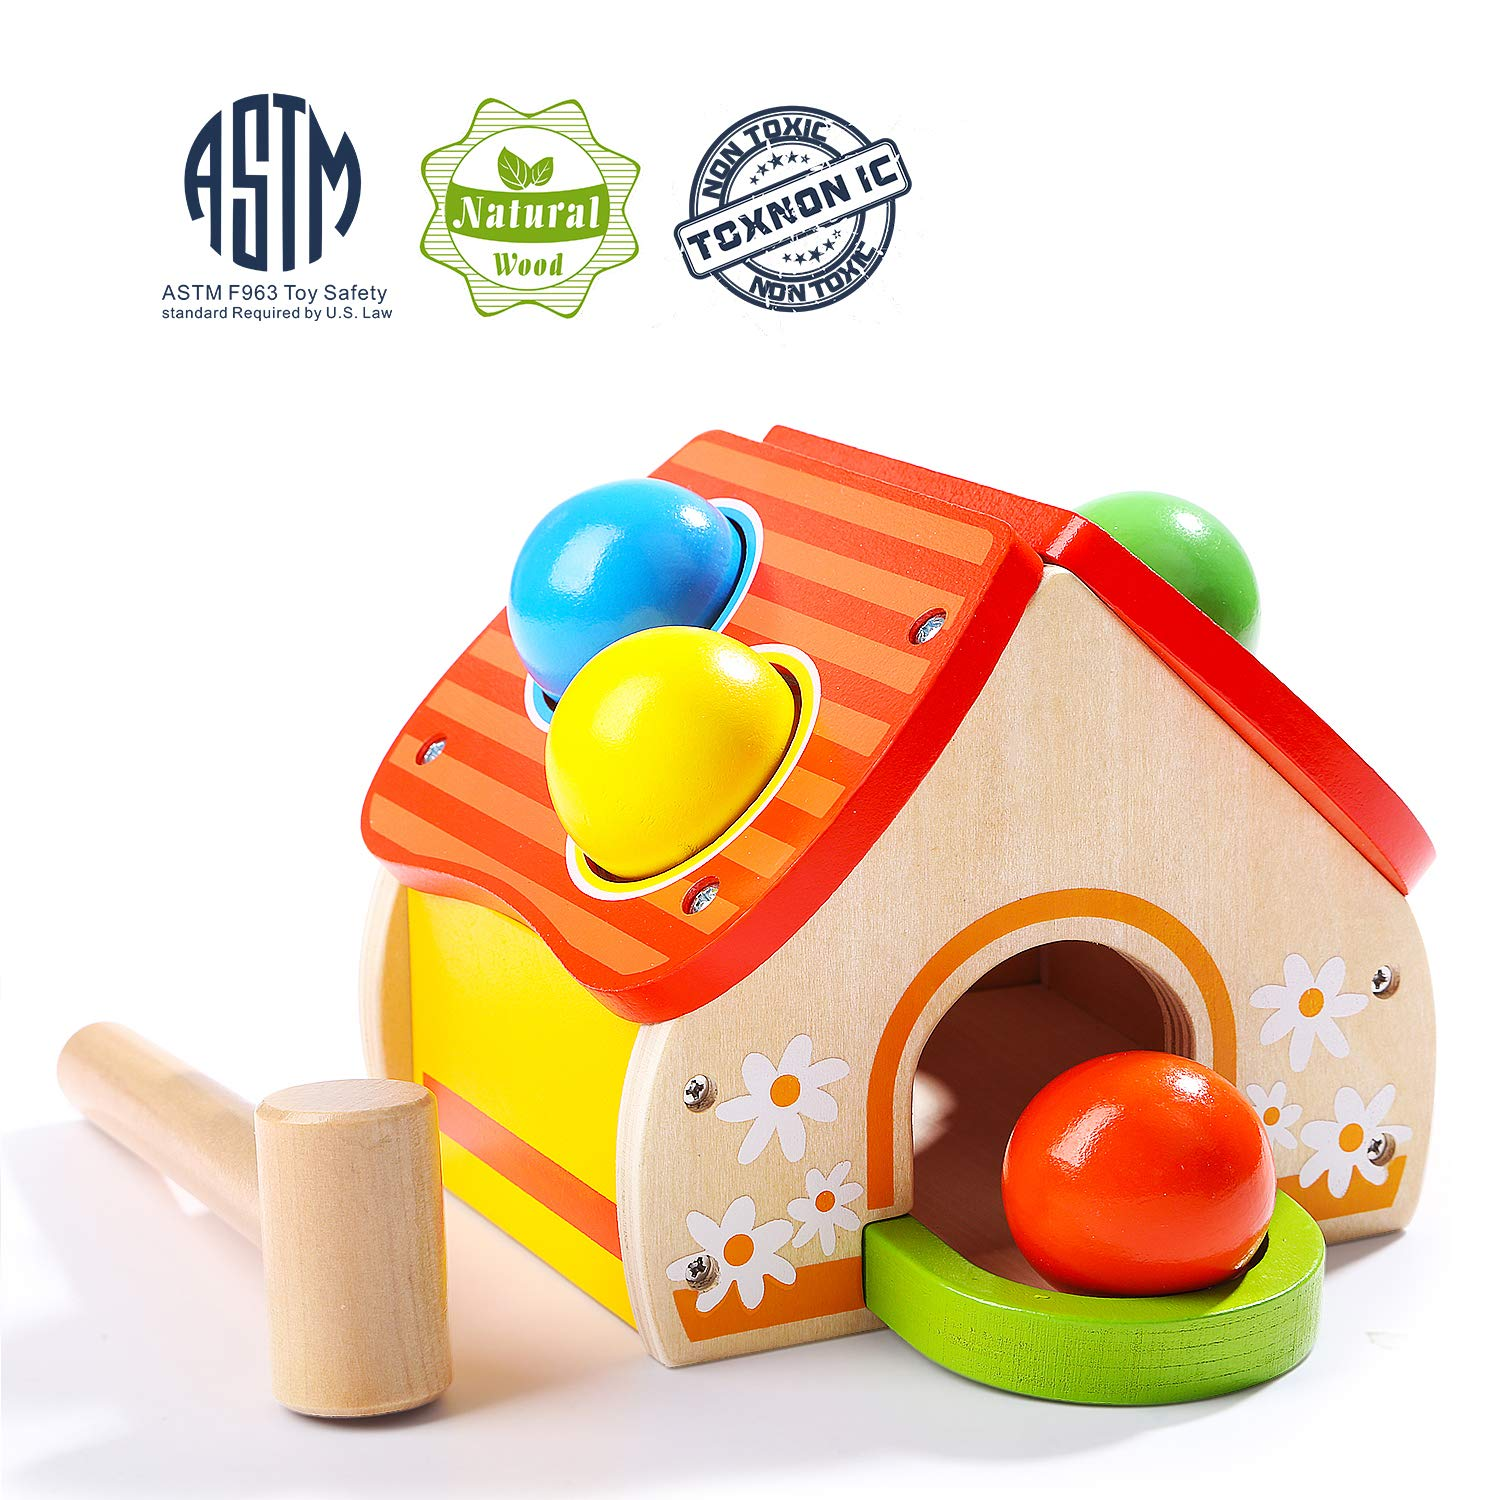 TOP BRIGHT Hammer Toy for 1 2 Year Old Boy and Girl Gifts Learning Wooden Montessori Toys for Toddlers Pounding and Color Matching Game with Ball Mallet